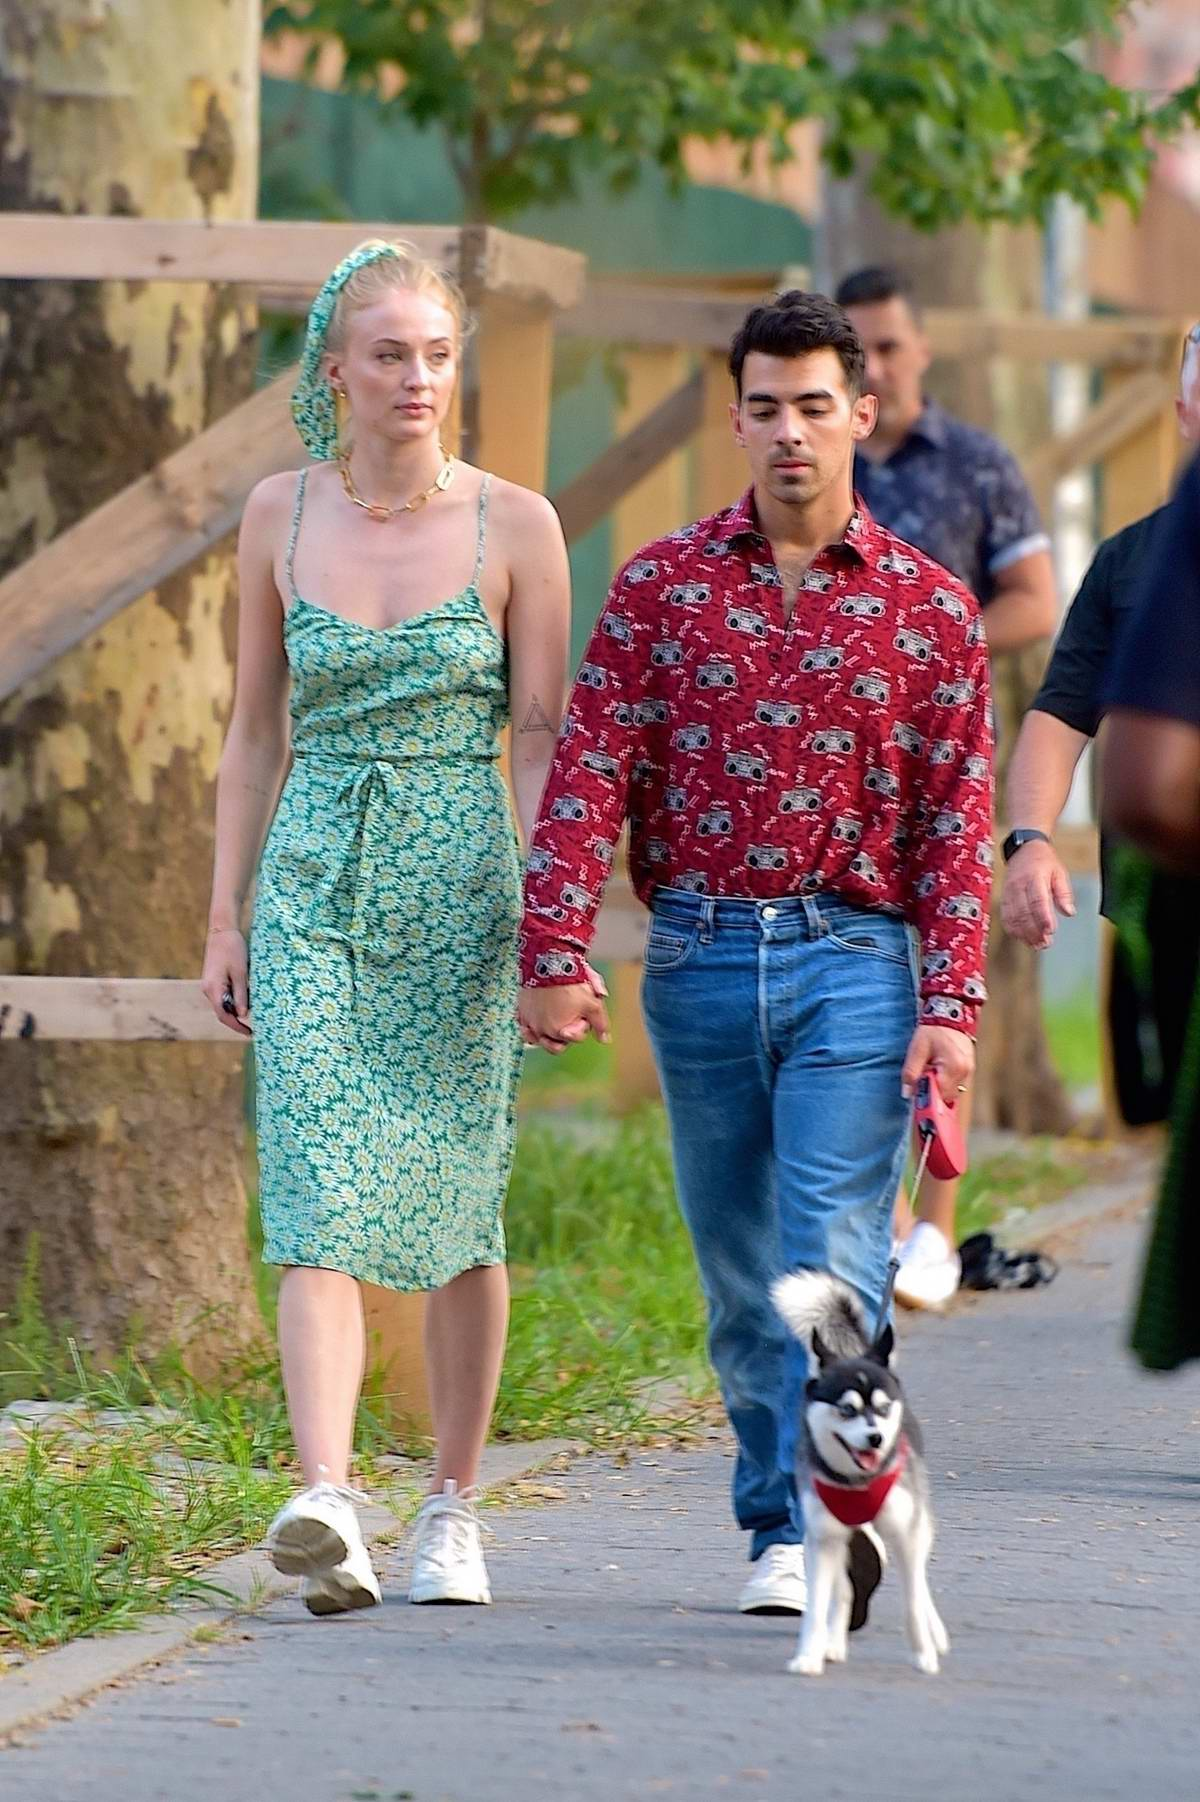 Sophie Turner and Joe Jonas steps out for a stroll with their dog in New York City